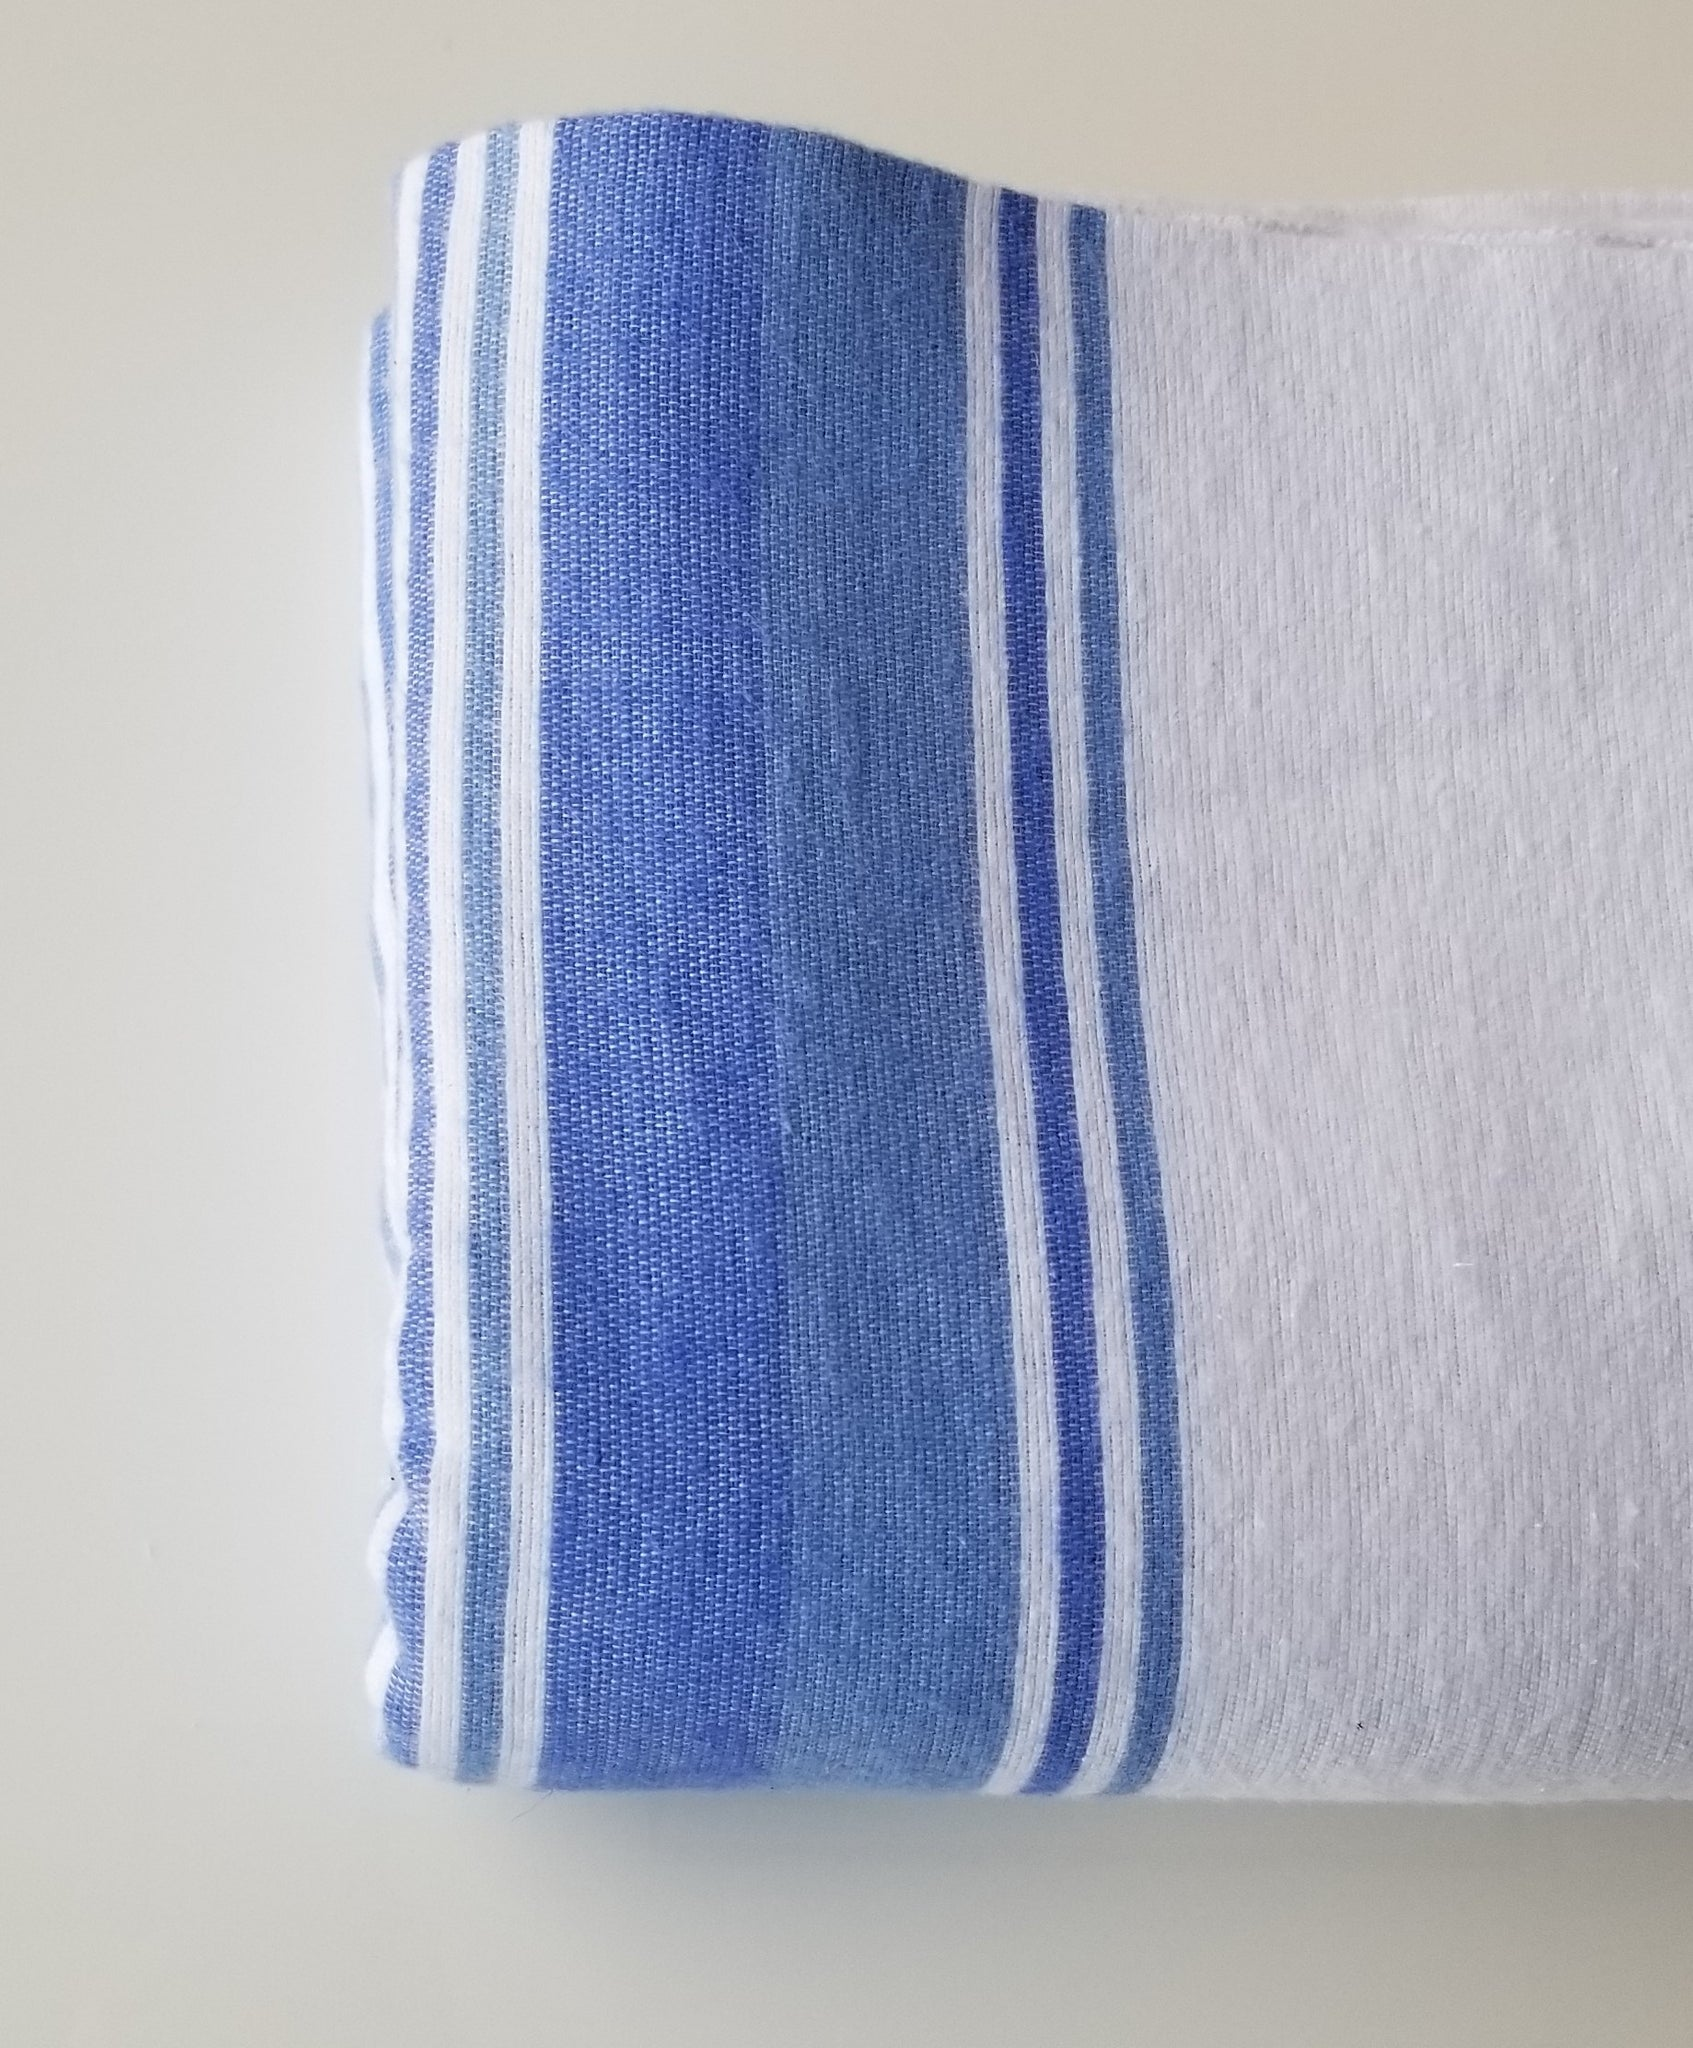 "Flannel Bath Blankets 72x90"" White with Blue Stripes"